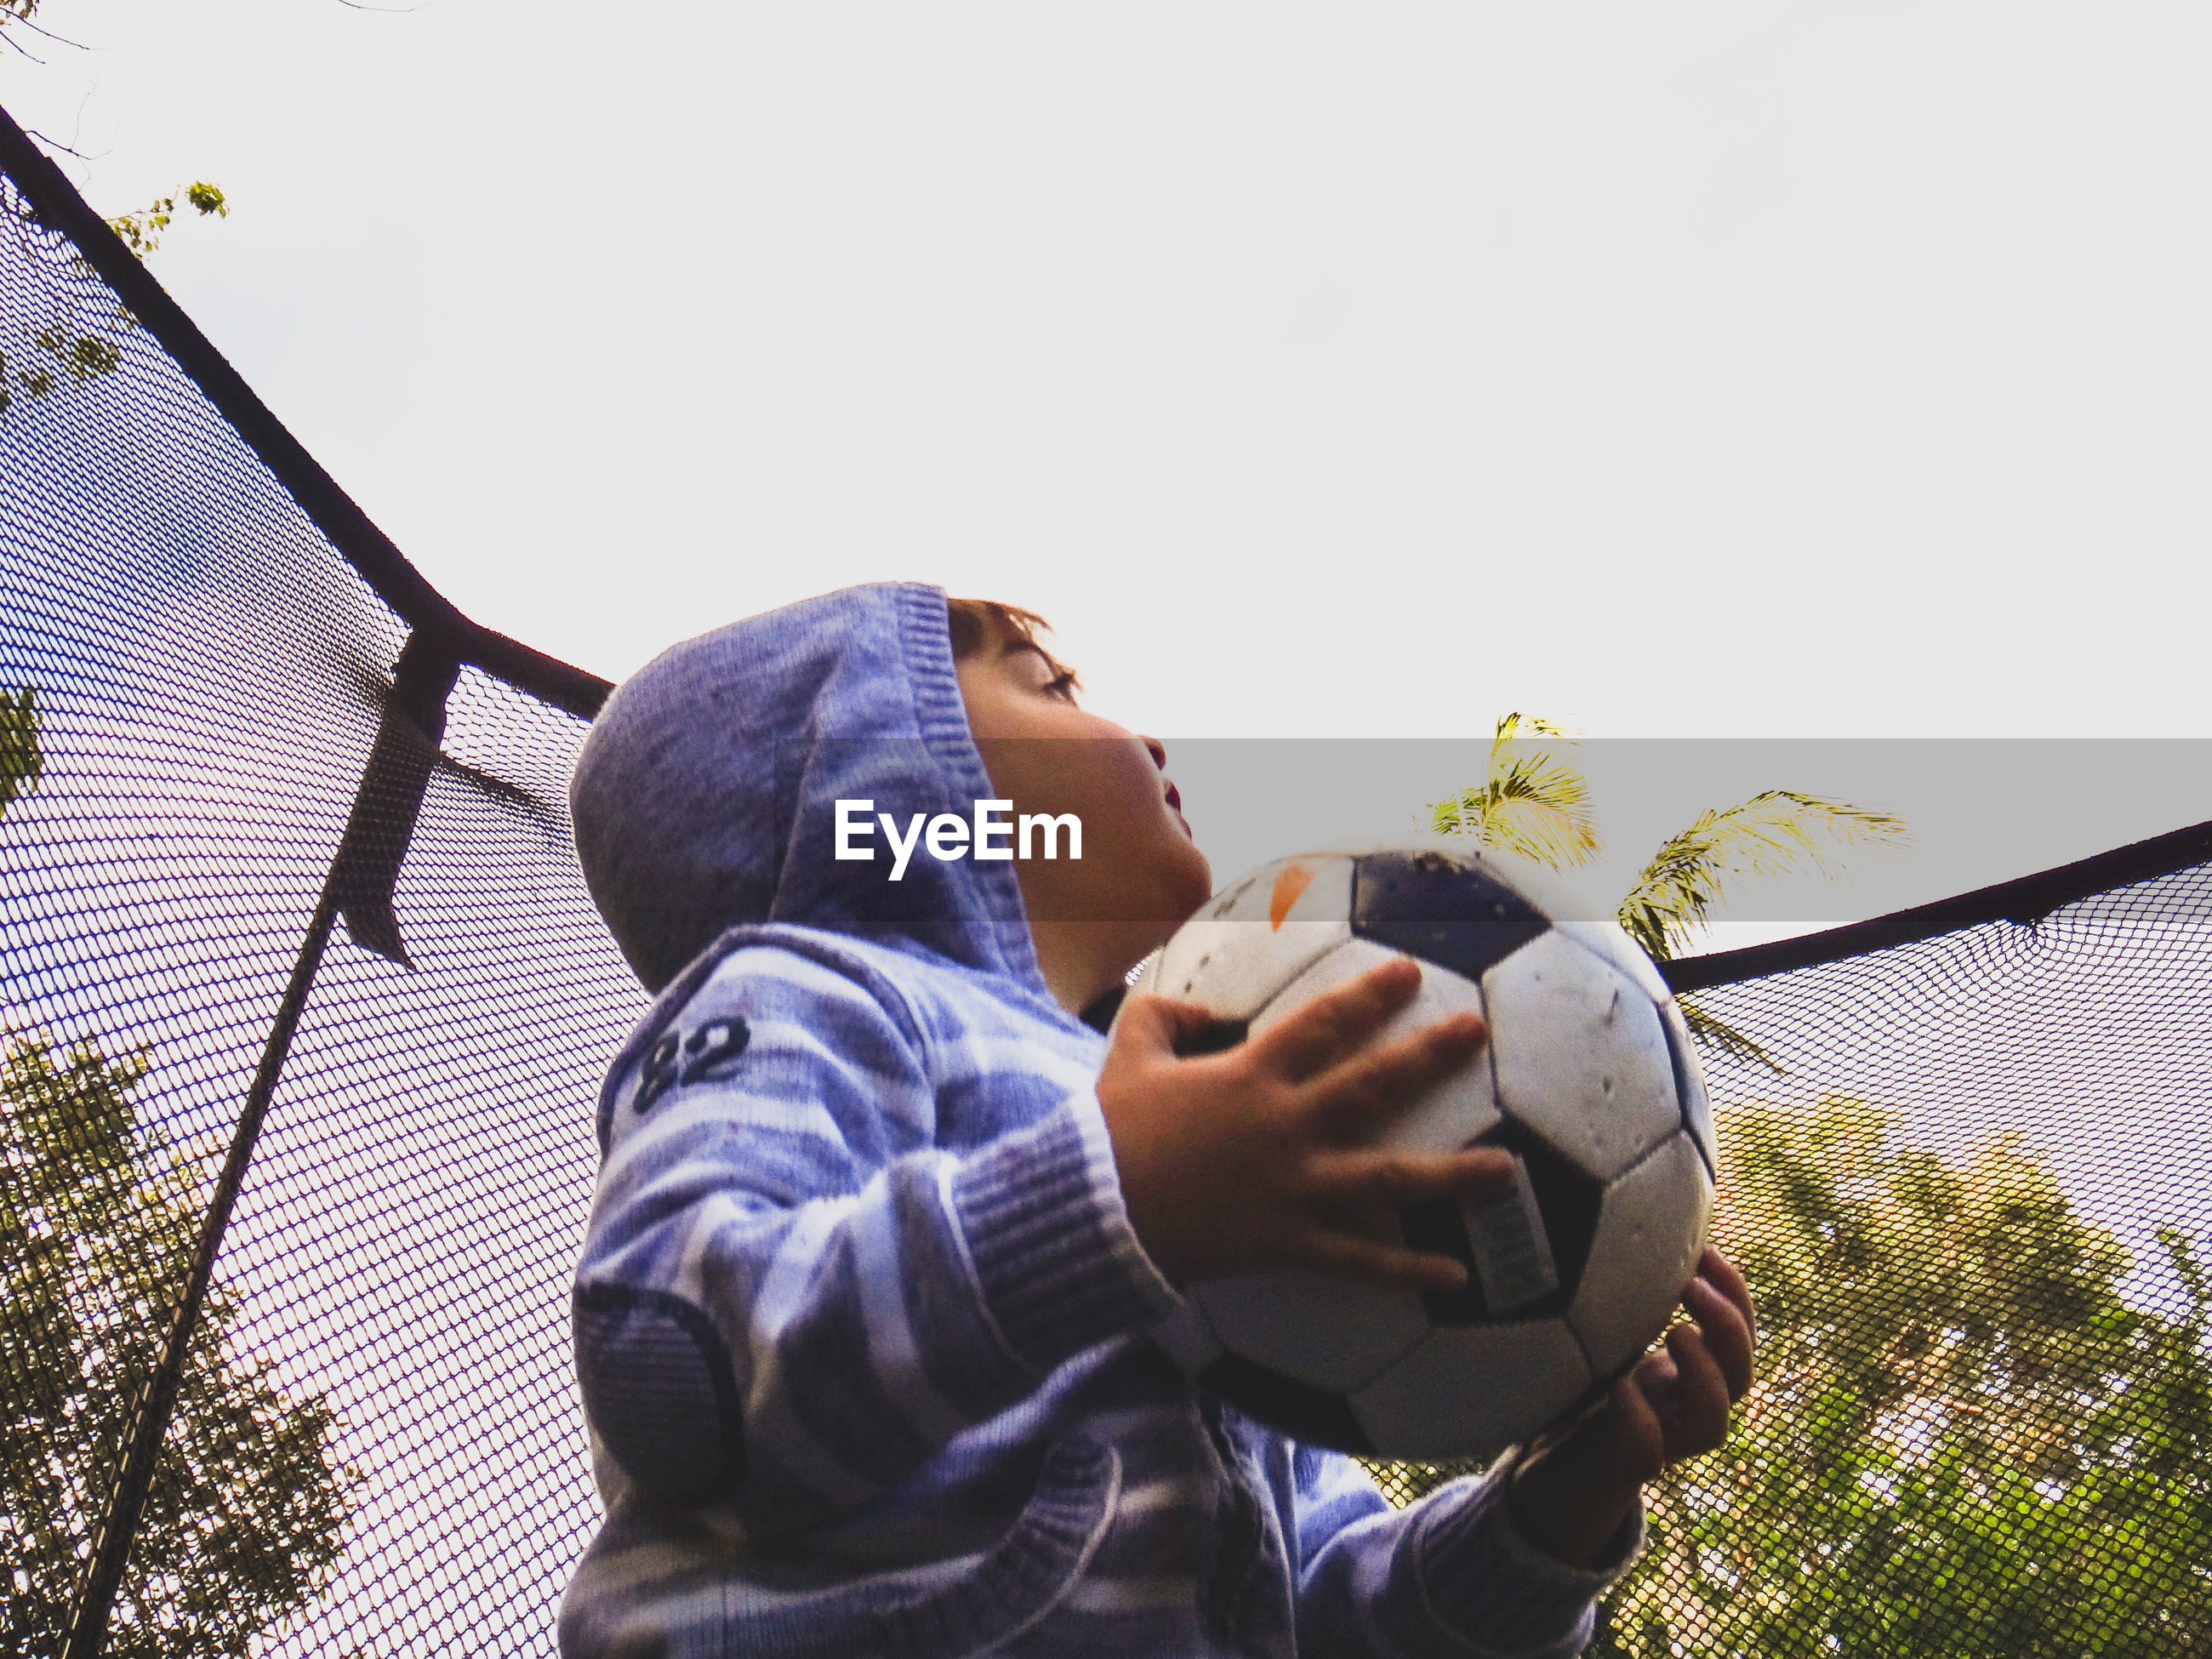 Low angle view boy looking up while holding soccer ball